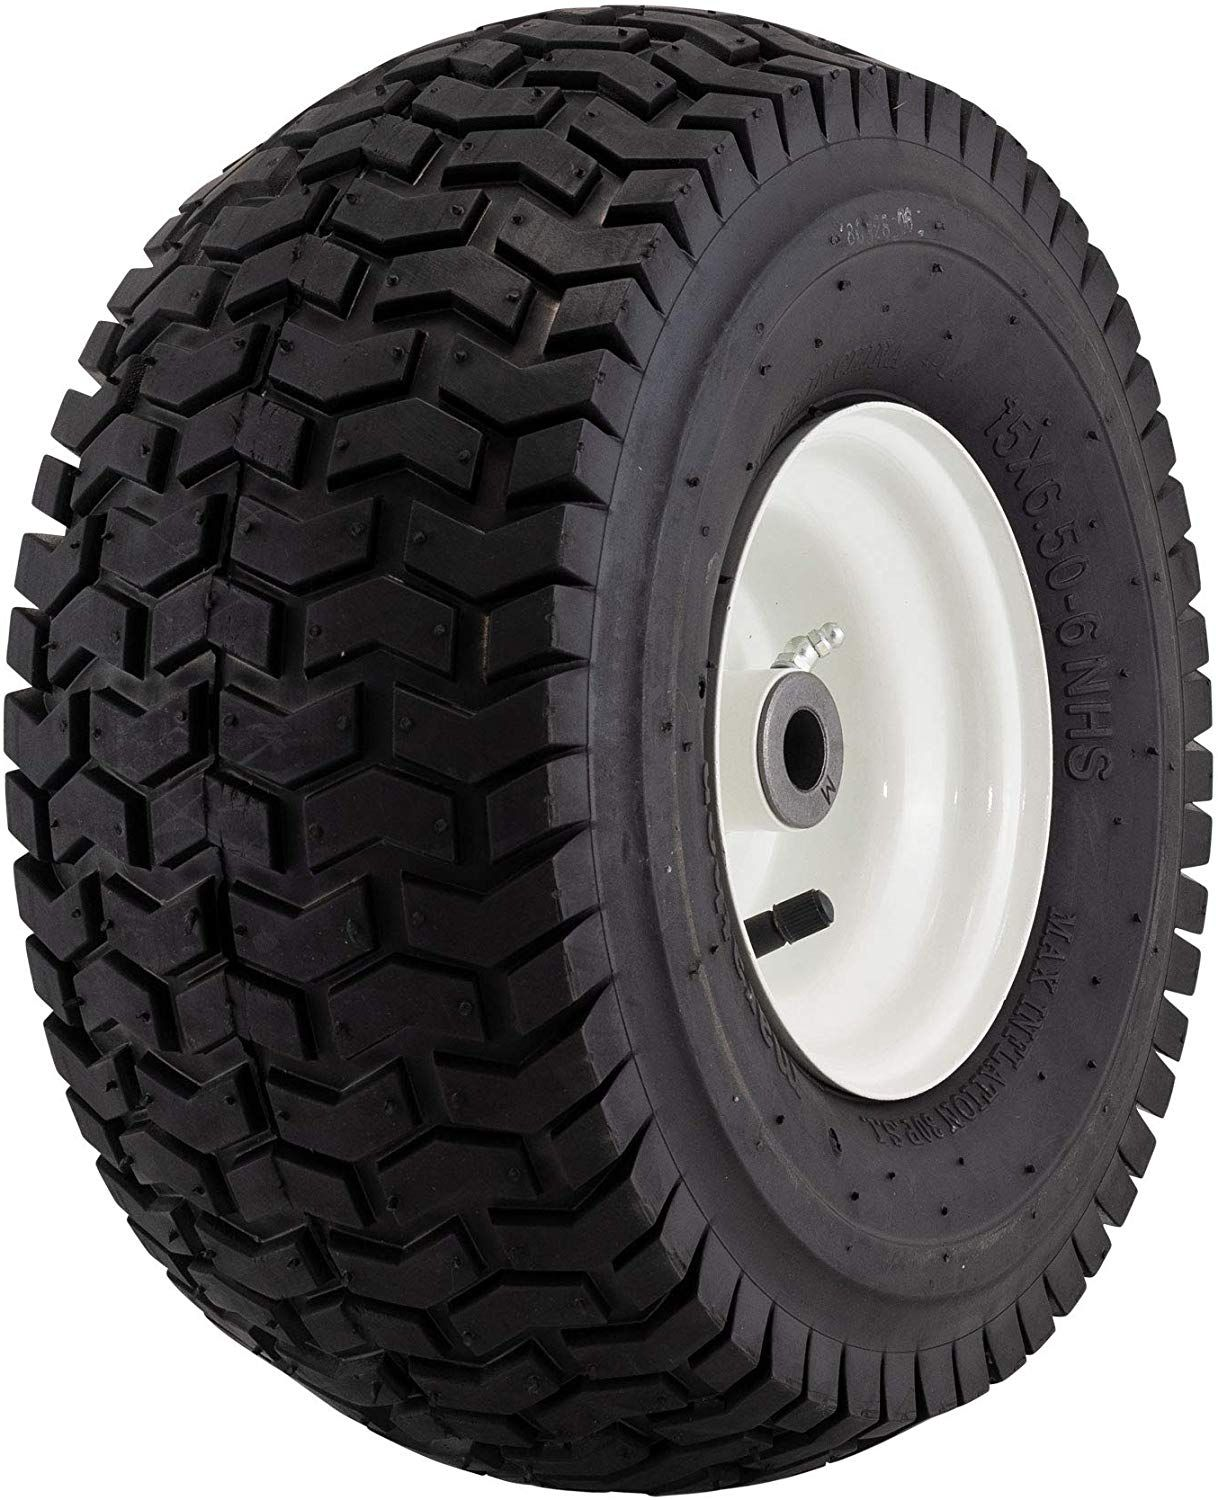 Marathon 20346 15x6 50 6 Pneumatic Air Filled Lawnmower Tire On Wheel Single More Info Could Be Found At The Image Url This Wheel Filling Lawn Mower